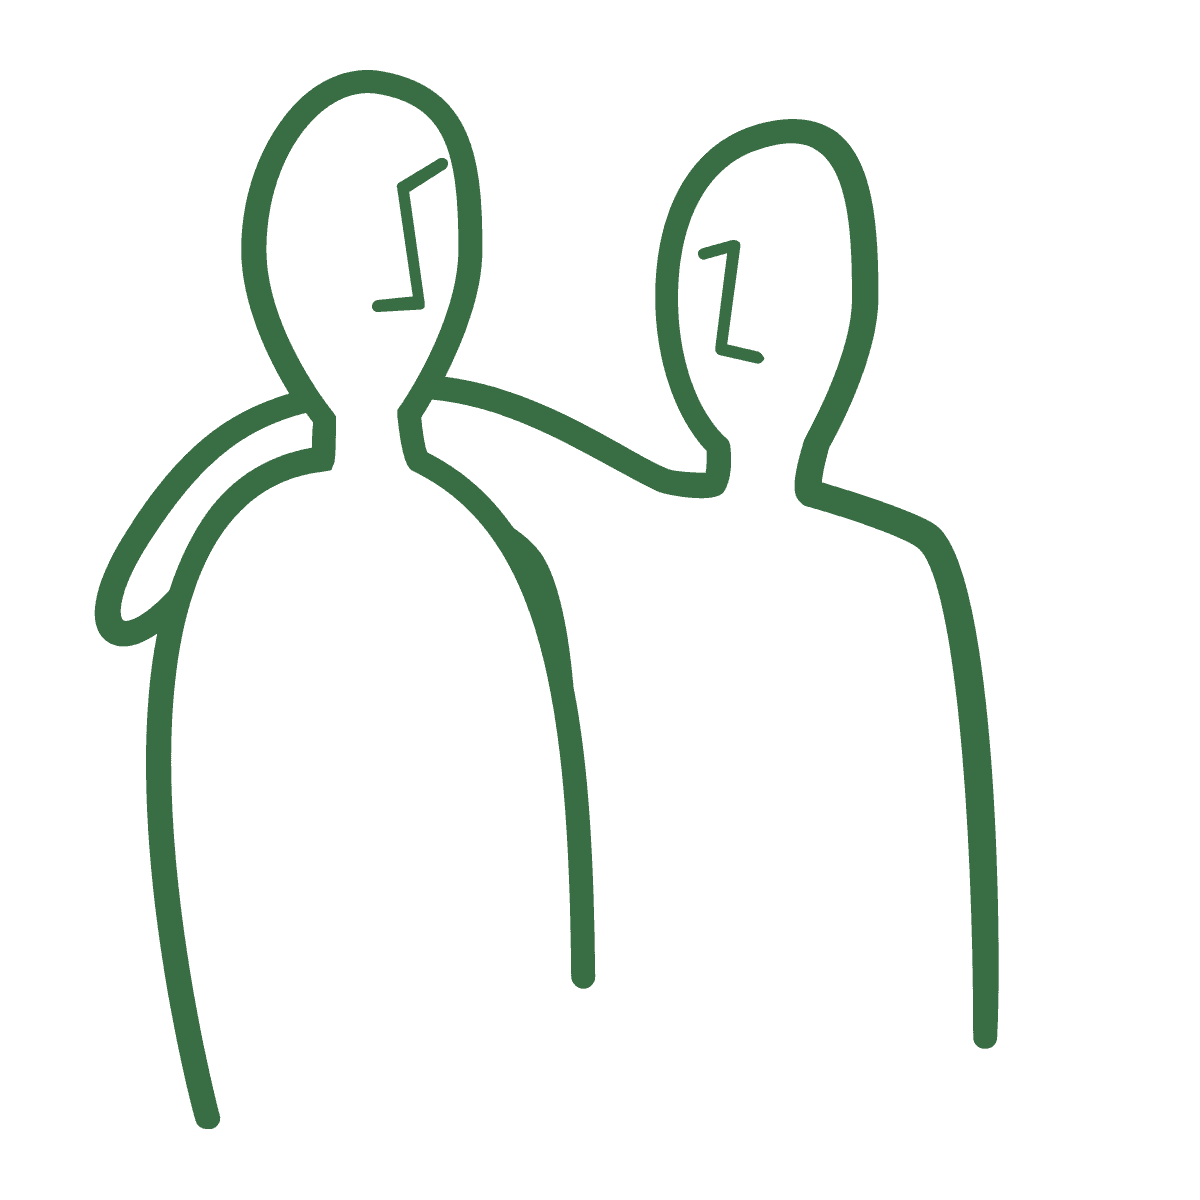 Two green stick people icons